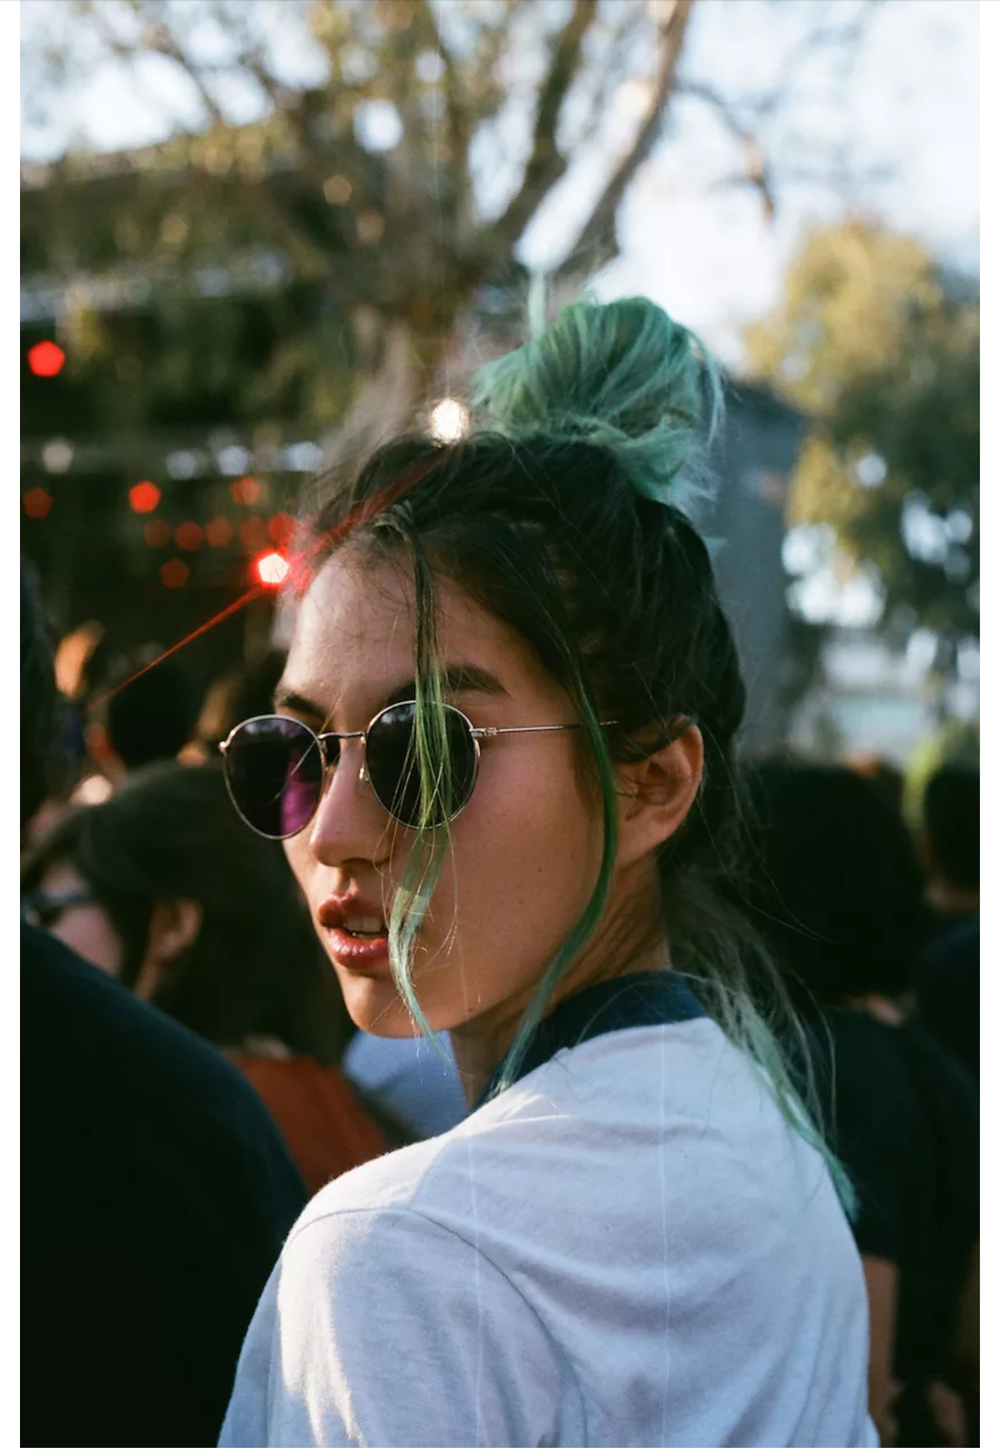 Nylon | A Burgerama-beauty-photo-diary